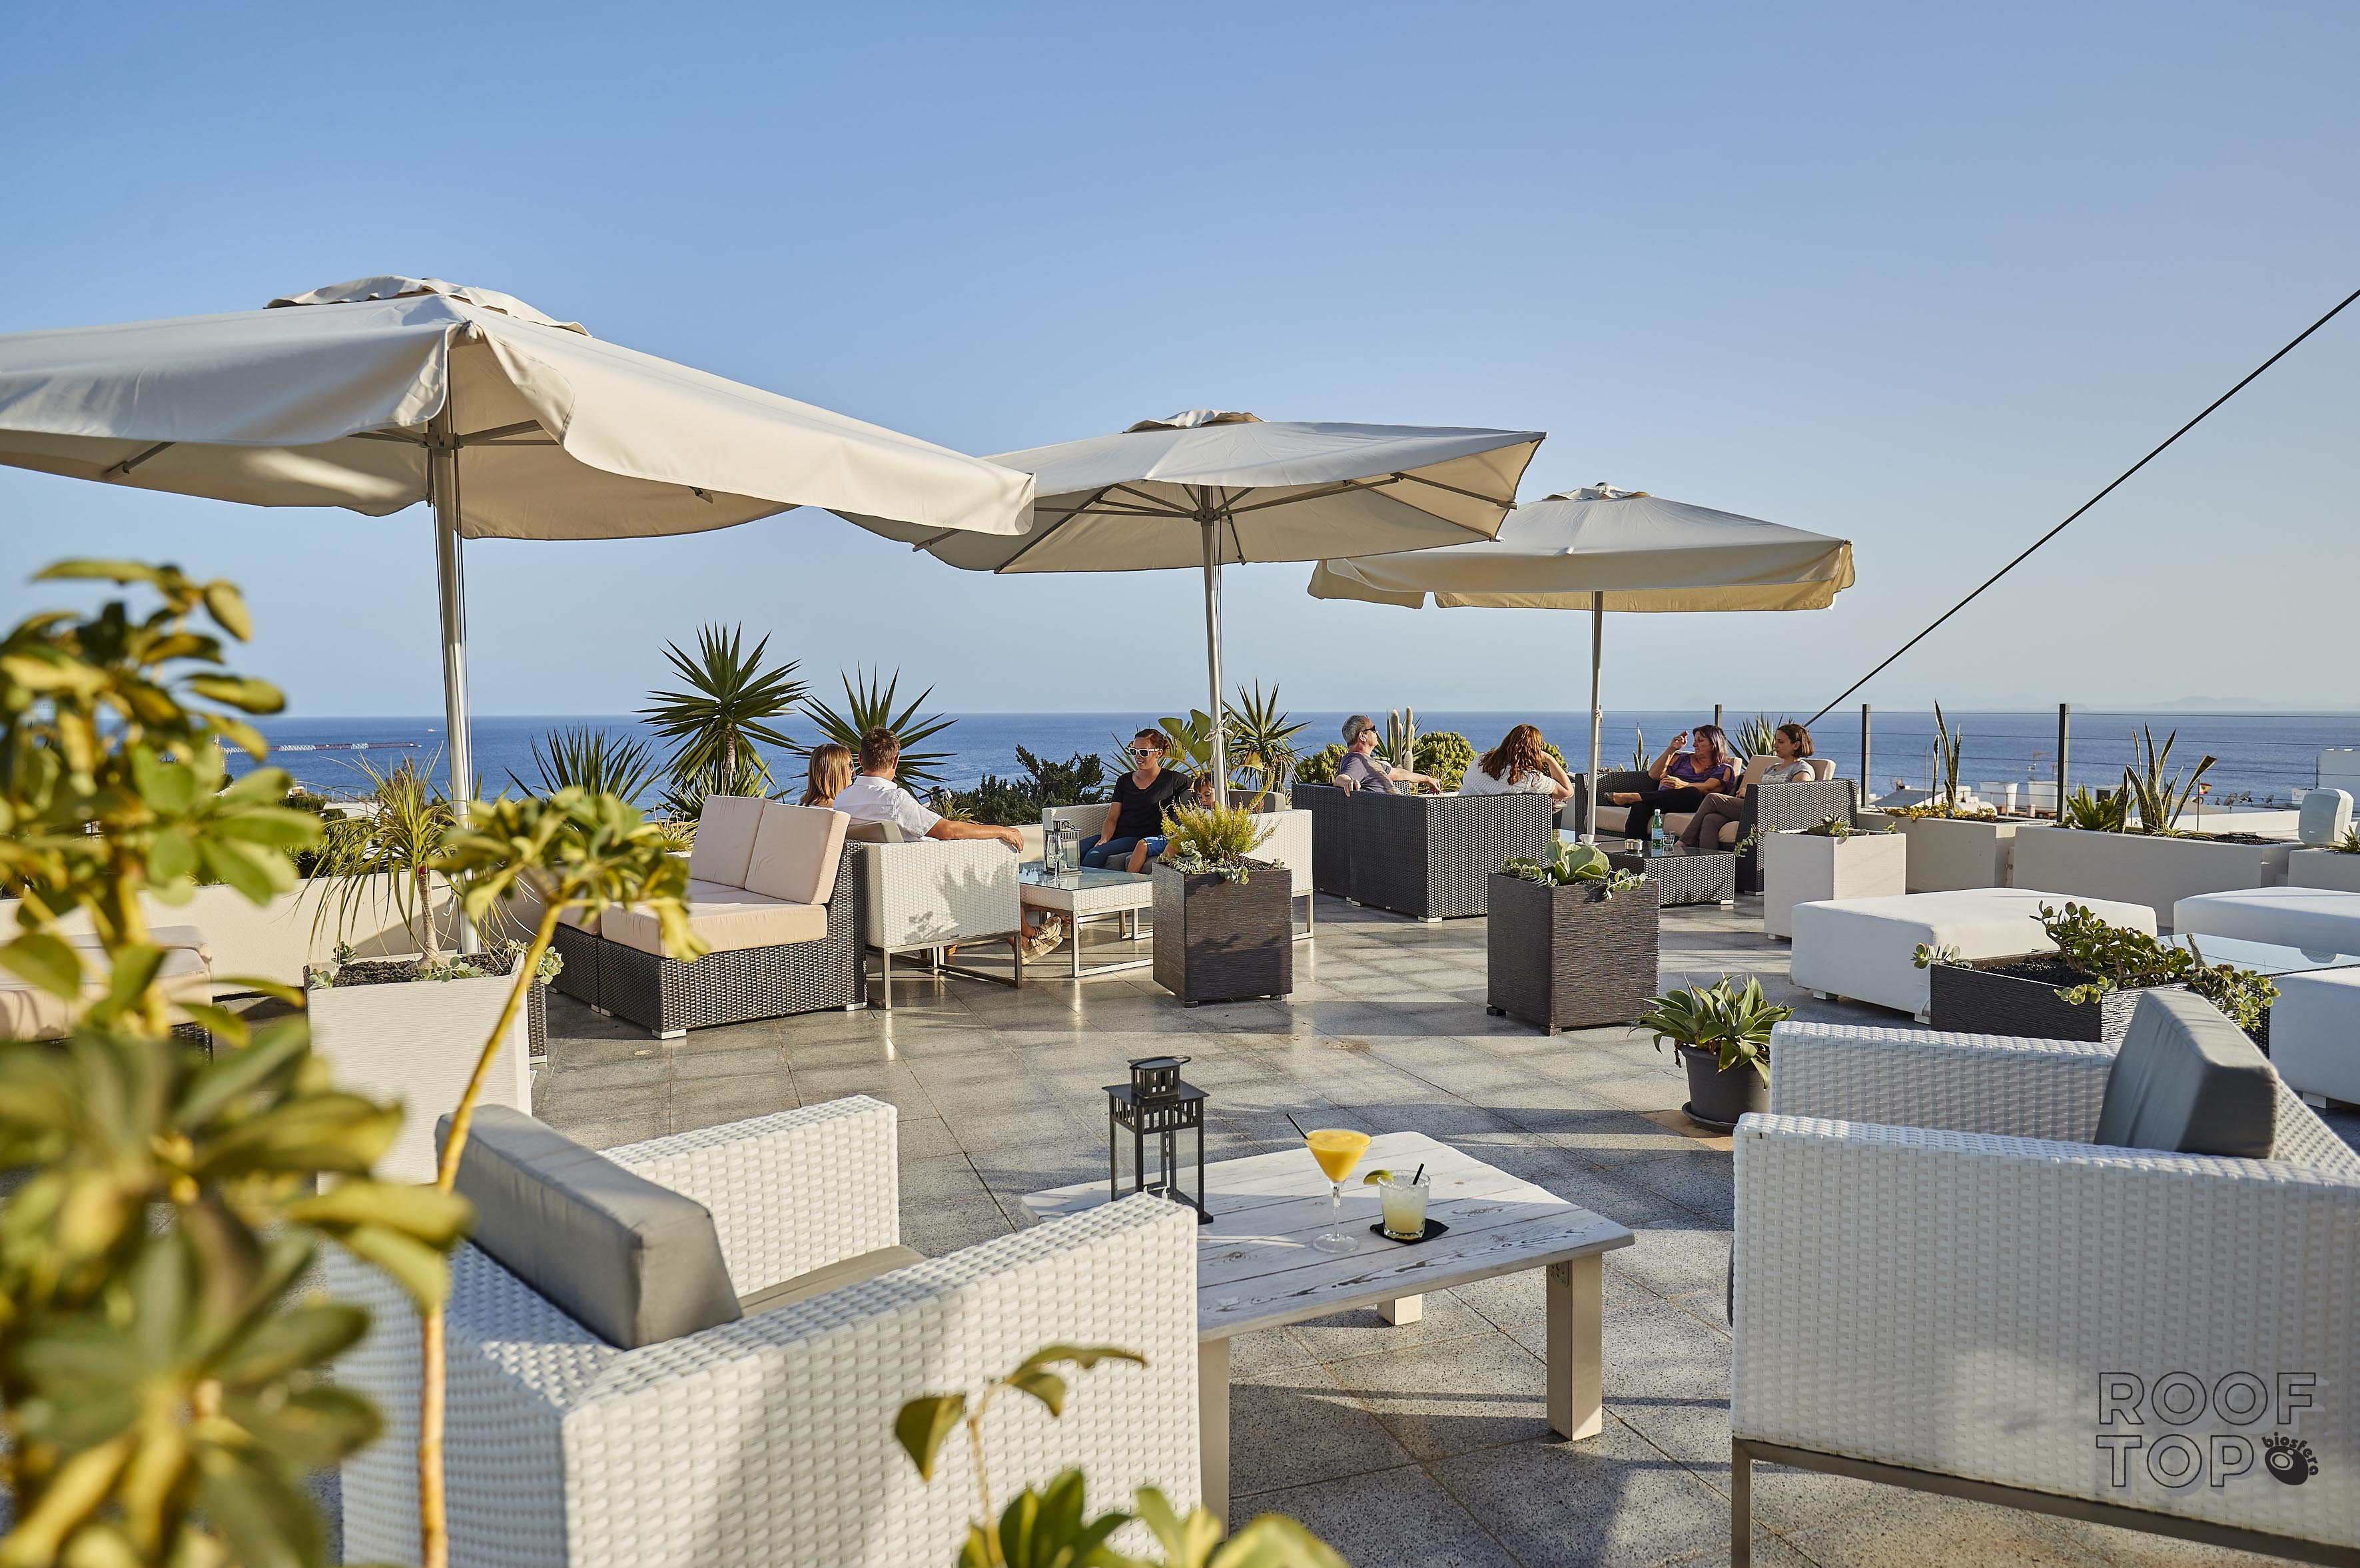 Daytime chillout Cocktail Lounge in Puerto del Carmen #RooftopLanzarote